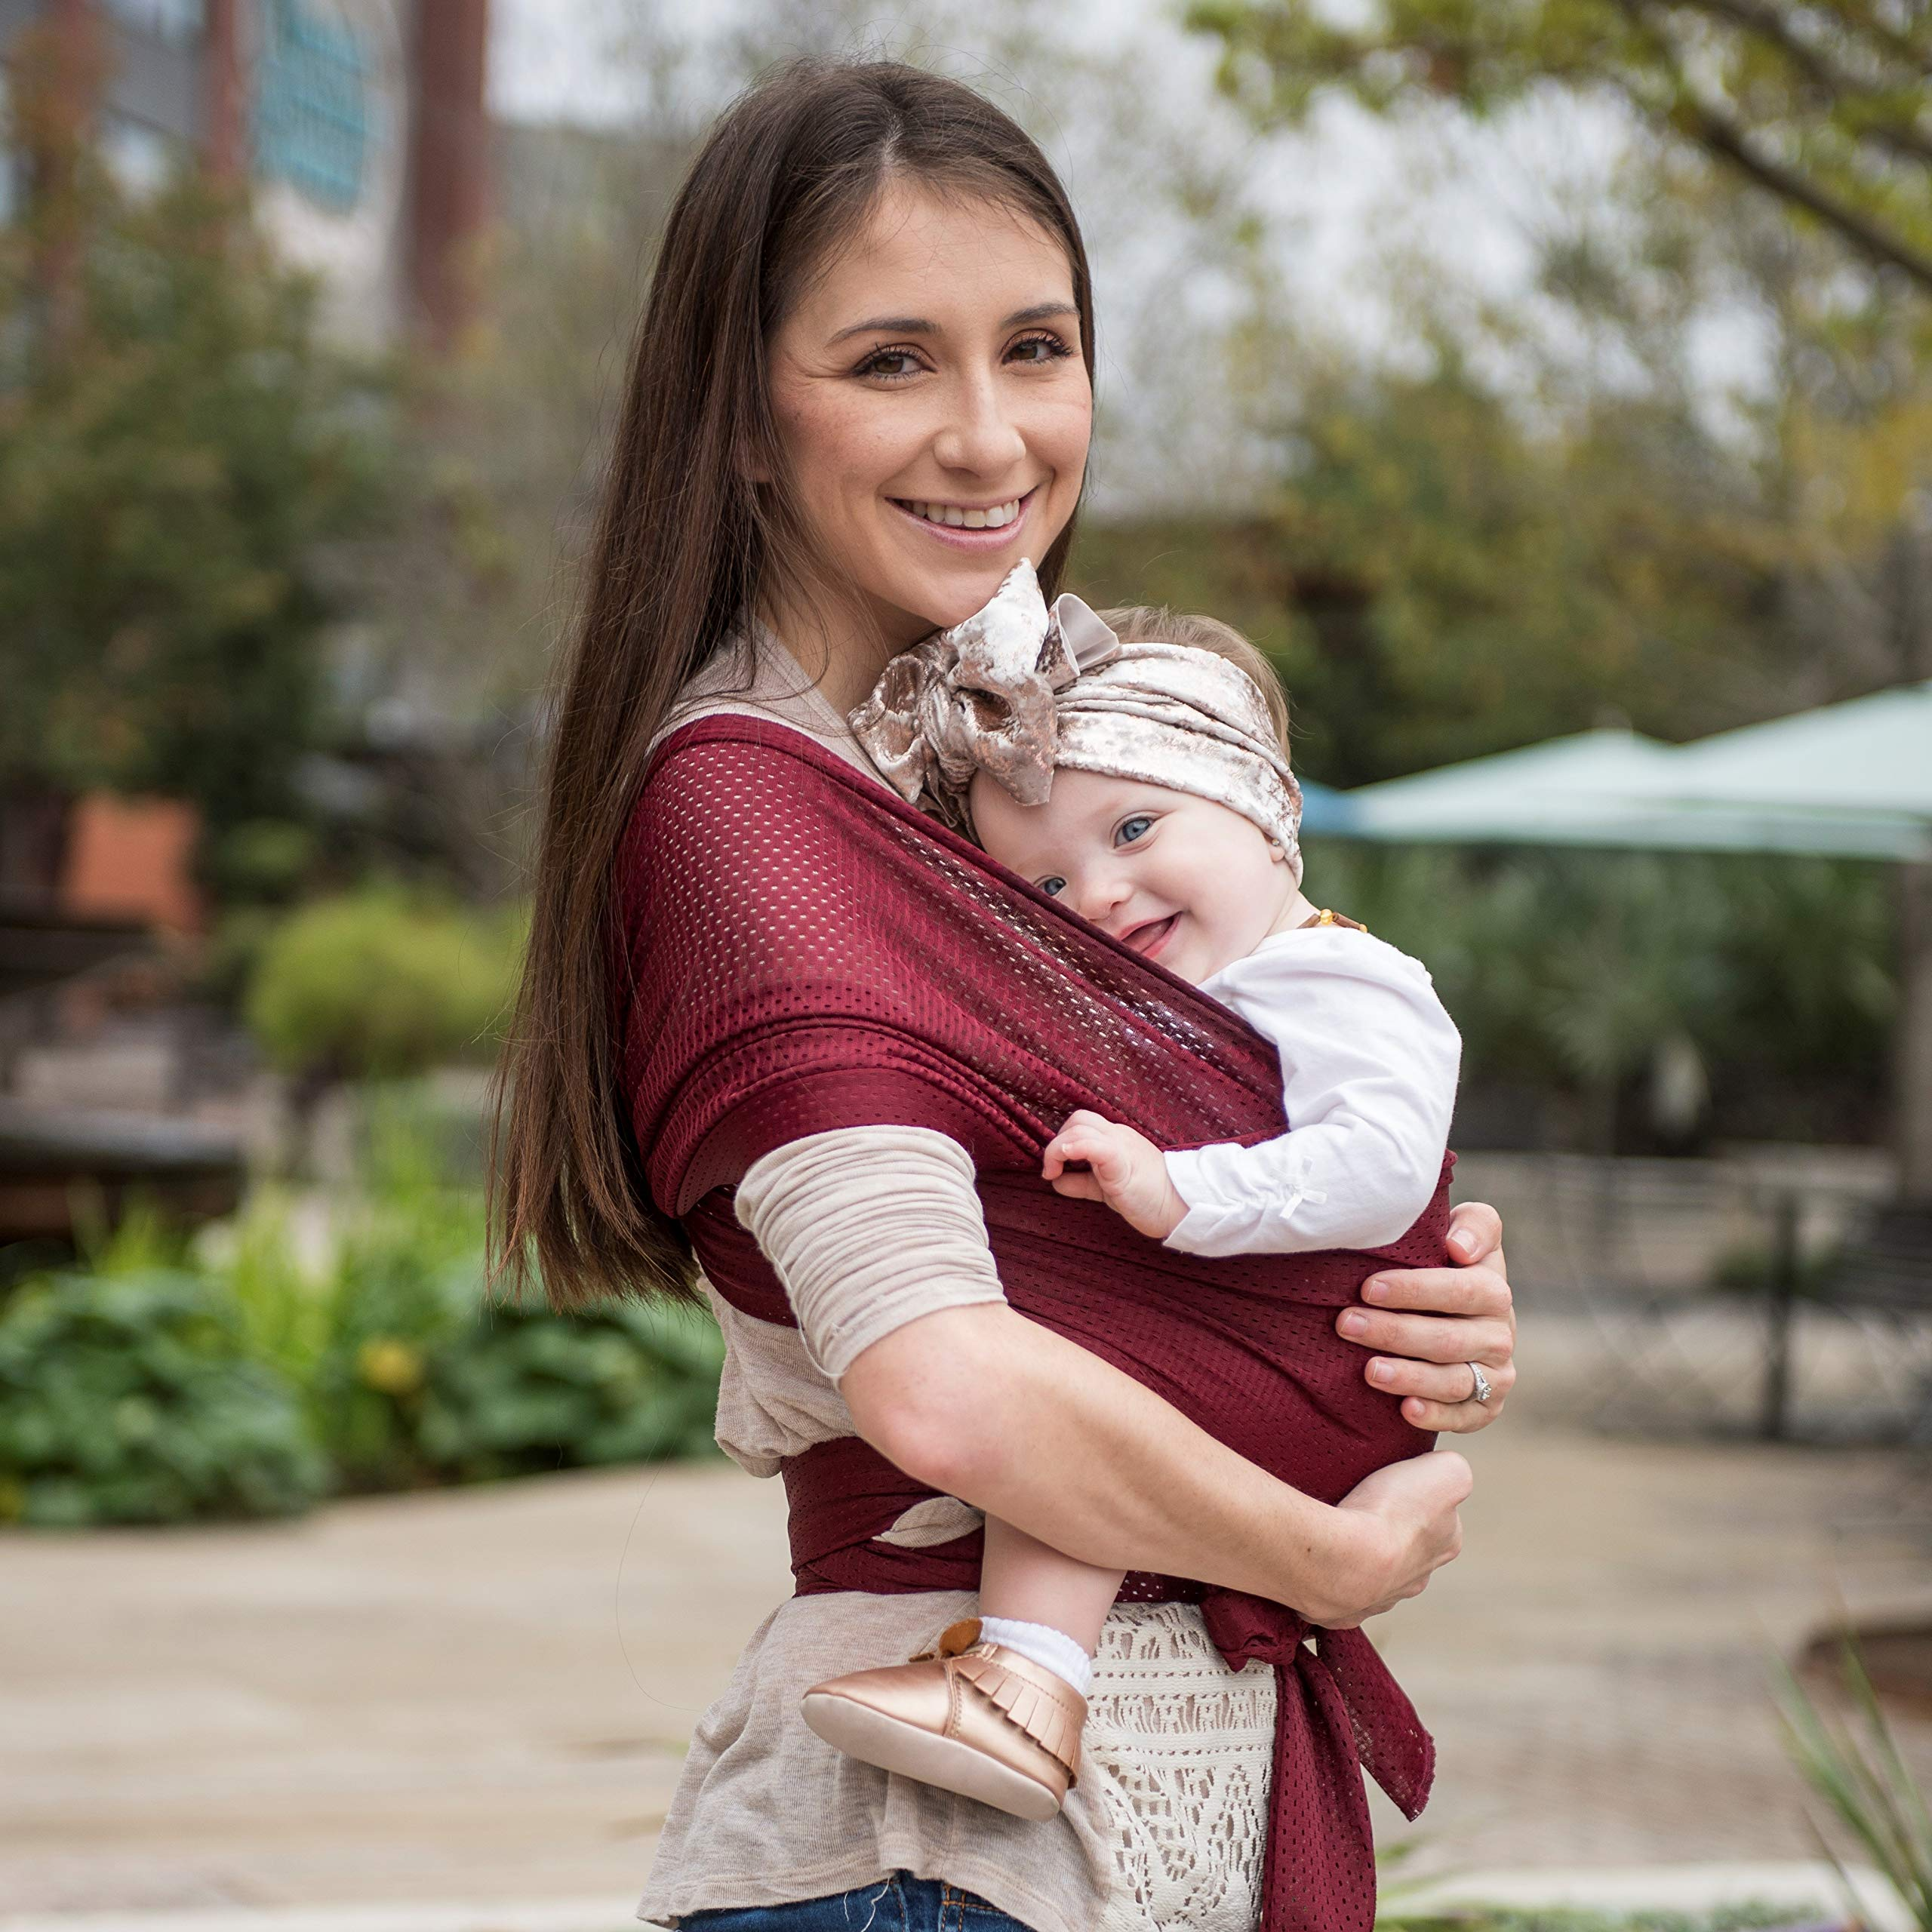 Beachfront Baby Wrap - Versatile Water & Warm Weather Baby Carrier | Made in USA with Safety Tested Fabric, CPSIA & ASTM Compliant | Lightweight, Quick Dry (Sparkling Sangria, X-Long)